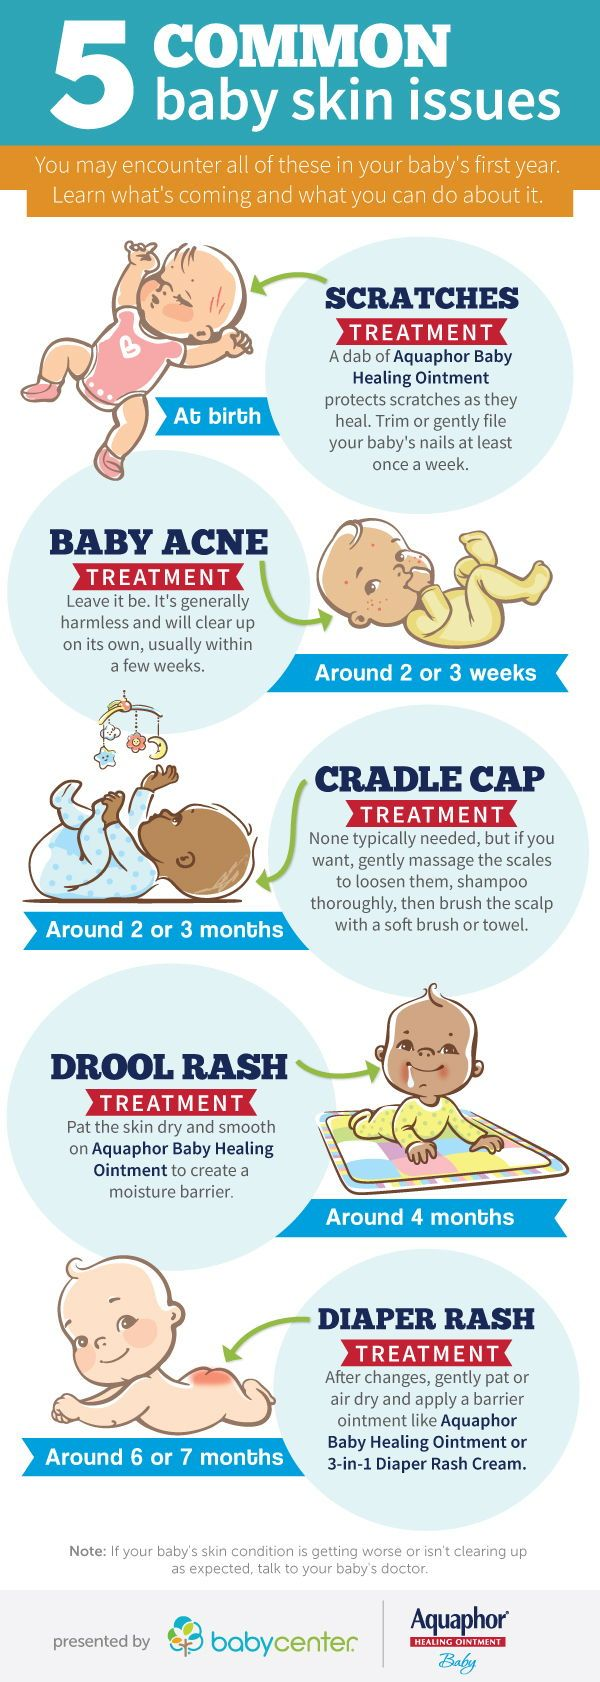 baby skin issues to expect in the first year parenting tips